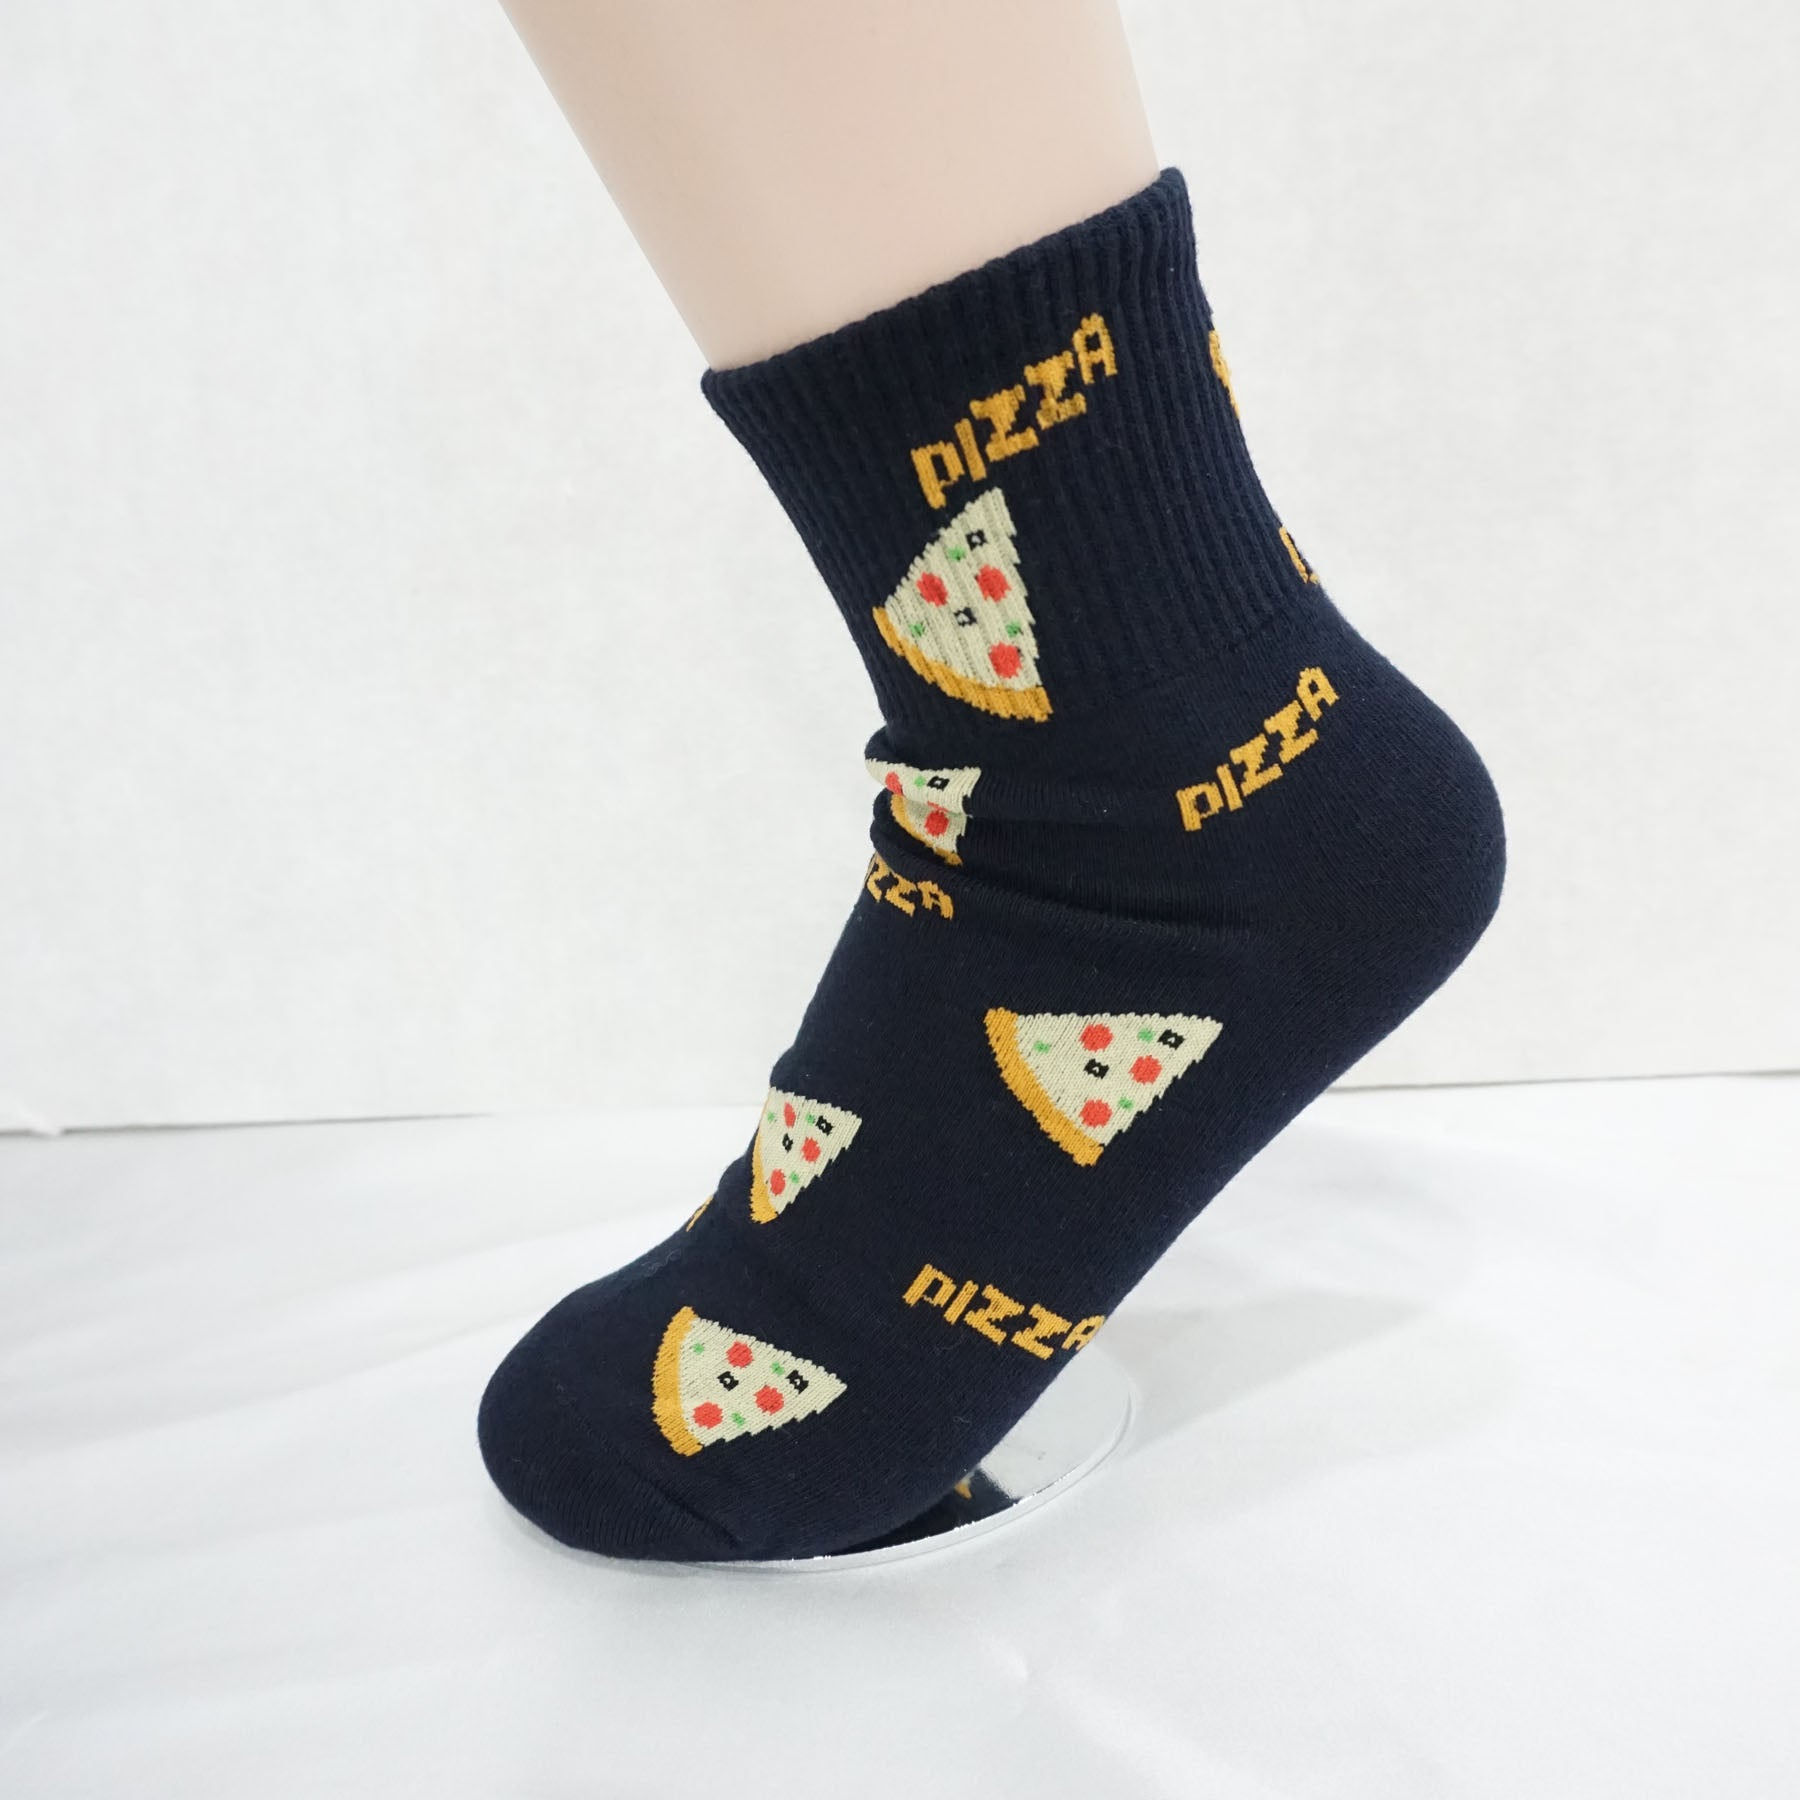 5Pairs Women's Cotton Food Name Fun Novelty Socks